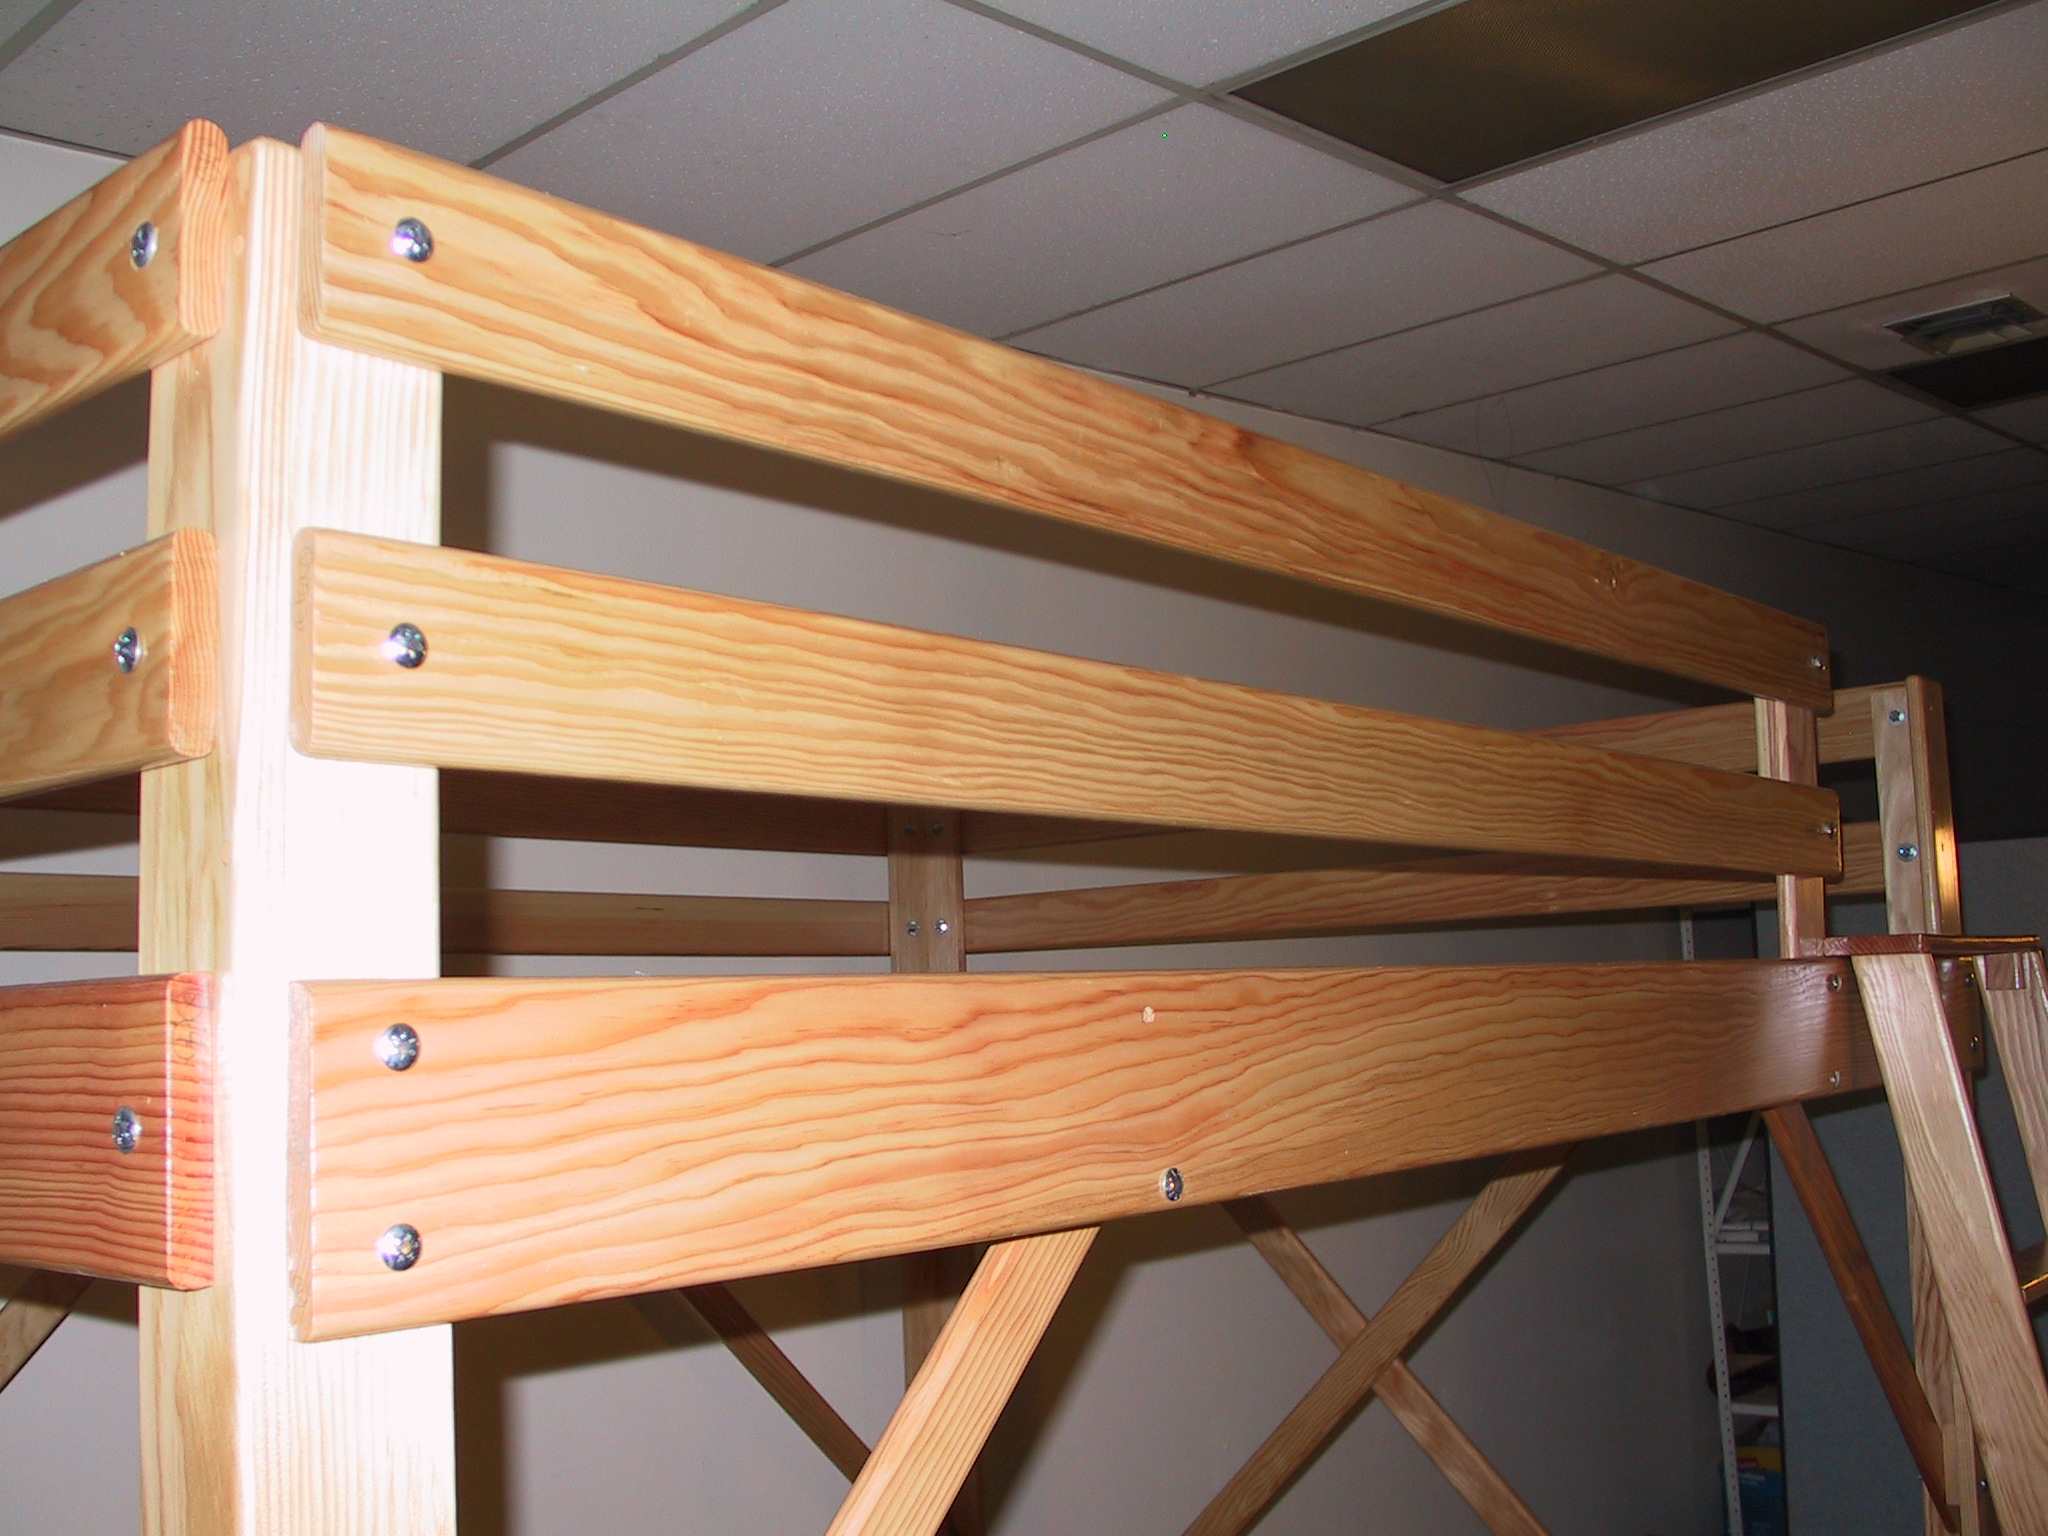 Wood Loft Lacquer Wood Loft Bed Finish Twin Full Queen And Extra